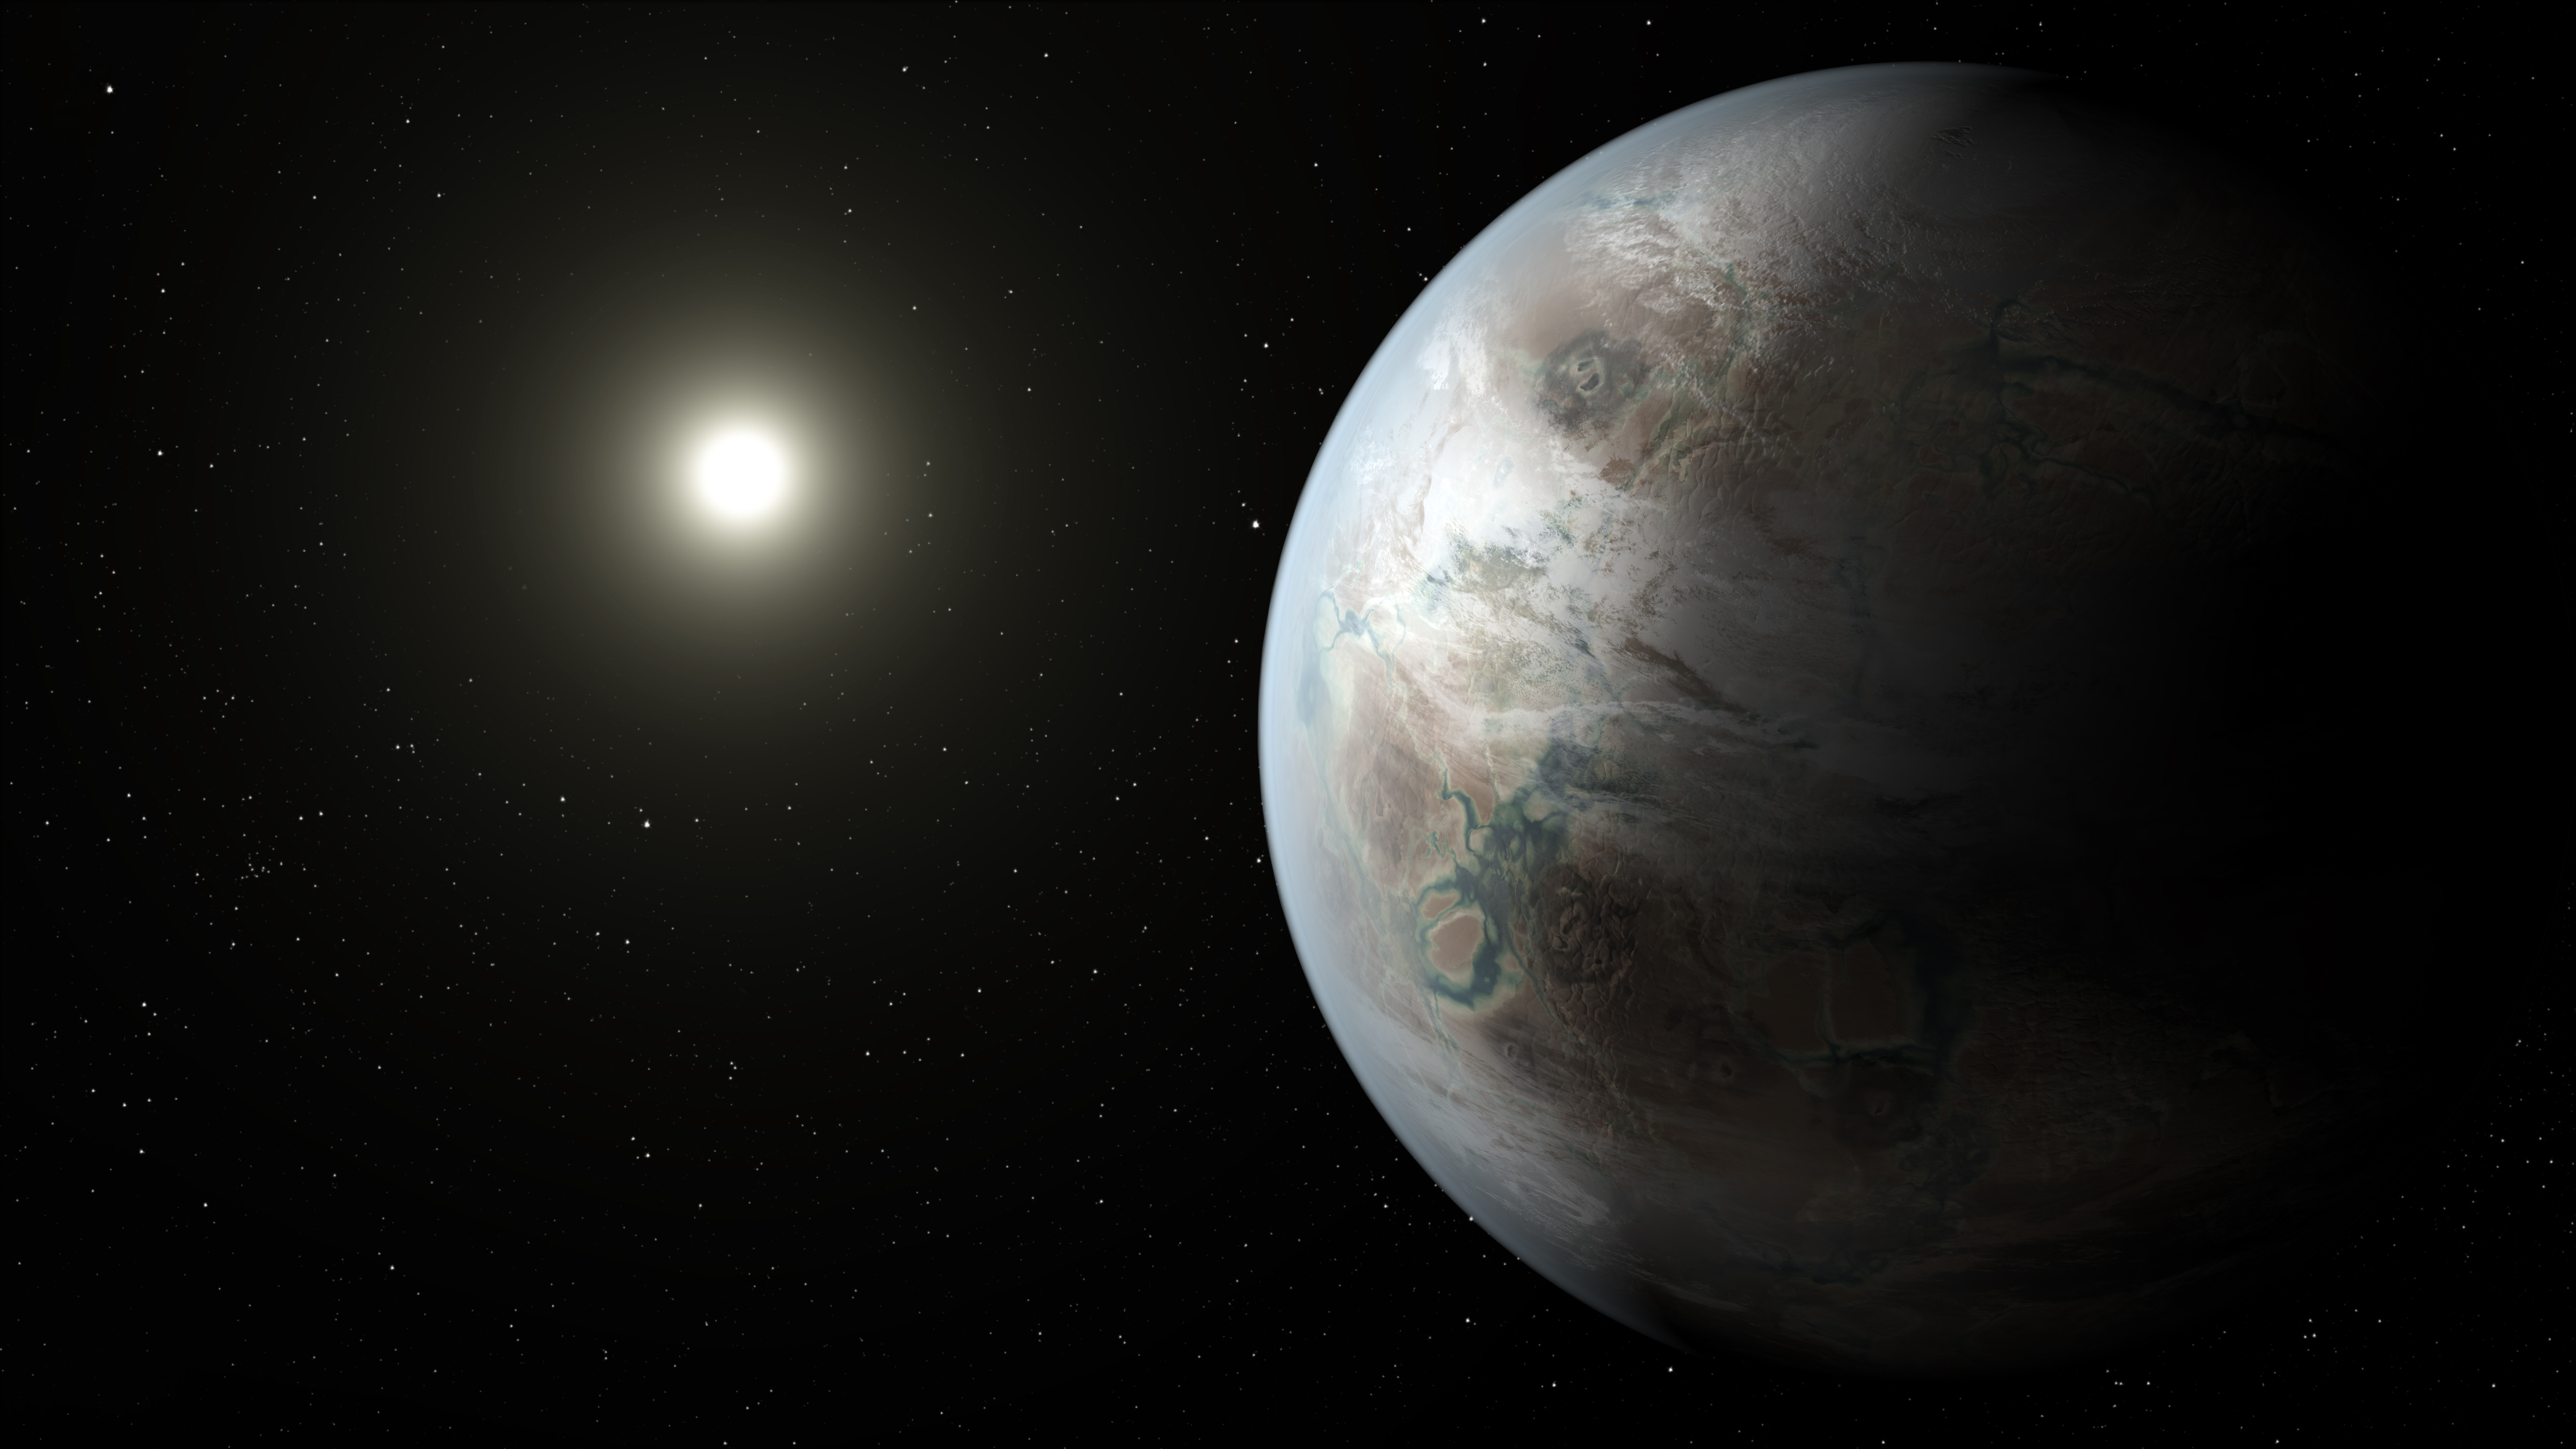 Scientists Spot Earth's Near-Identical Twin 1,400 Light-Years Away